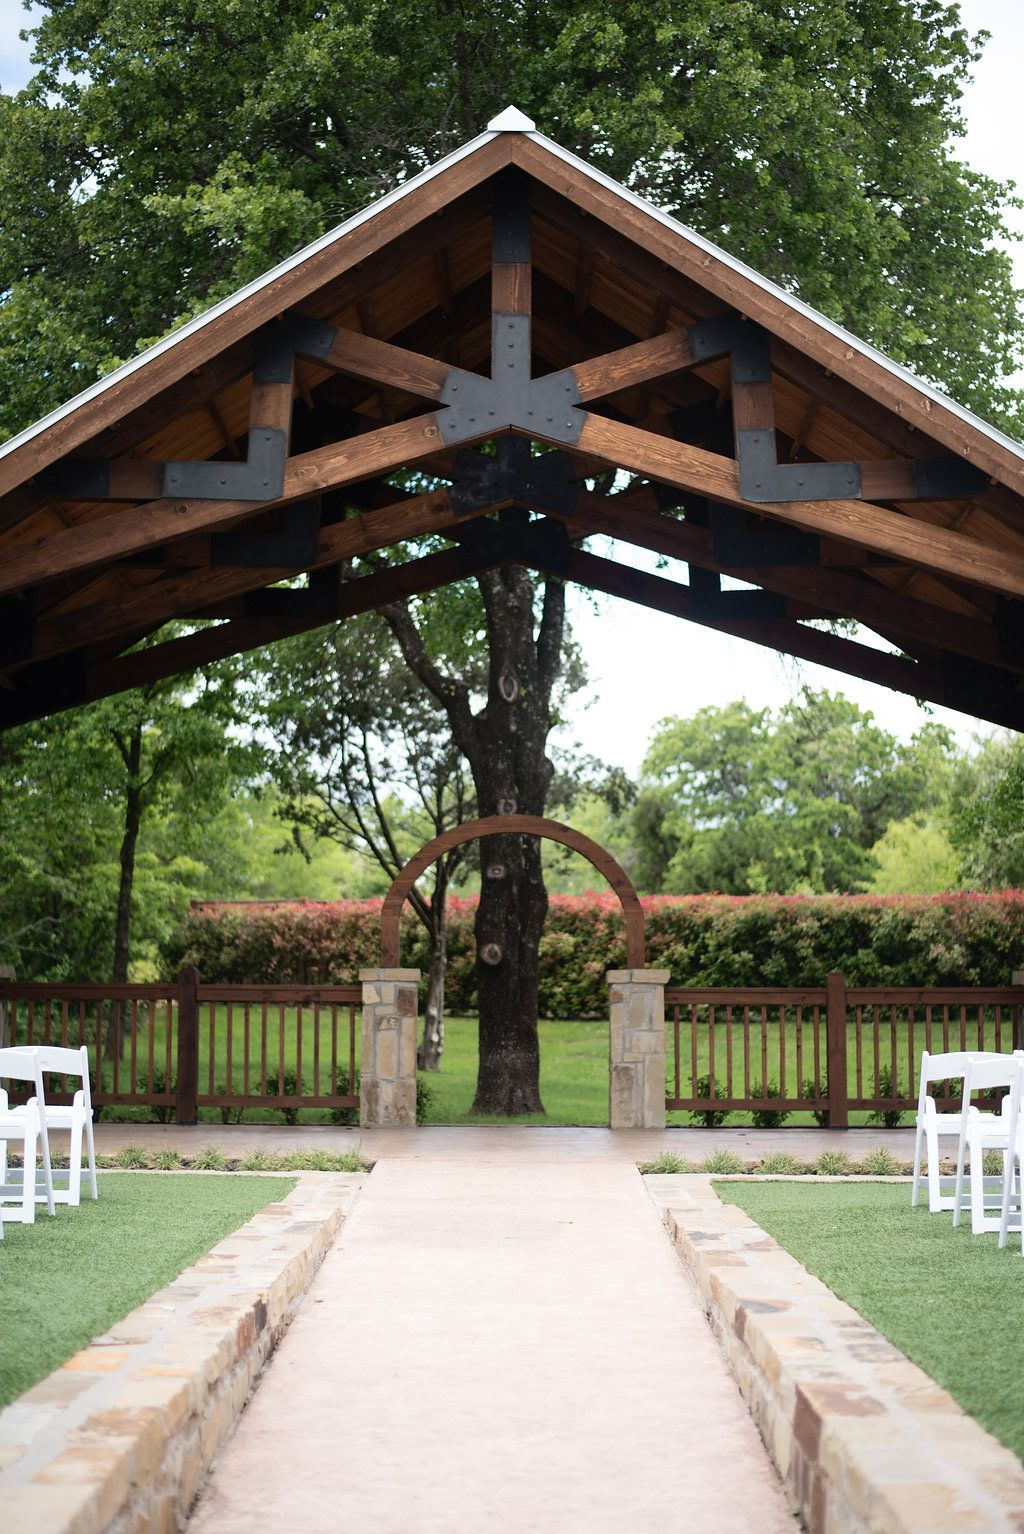 Outdoor Fort Worth Wedding Venue Places To Get Married In Fort Worth Texas Outdoor Wedding C Outdoor Wedding Venues Texas Outdoor Wedding Venues Outdoor